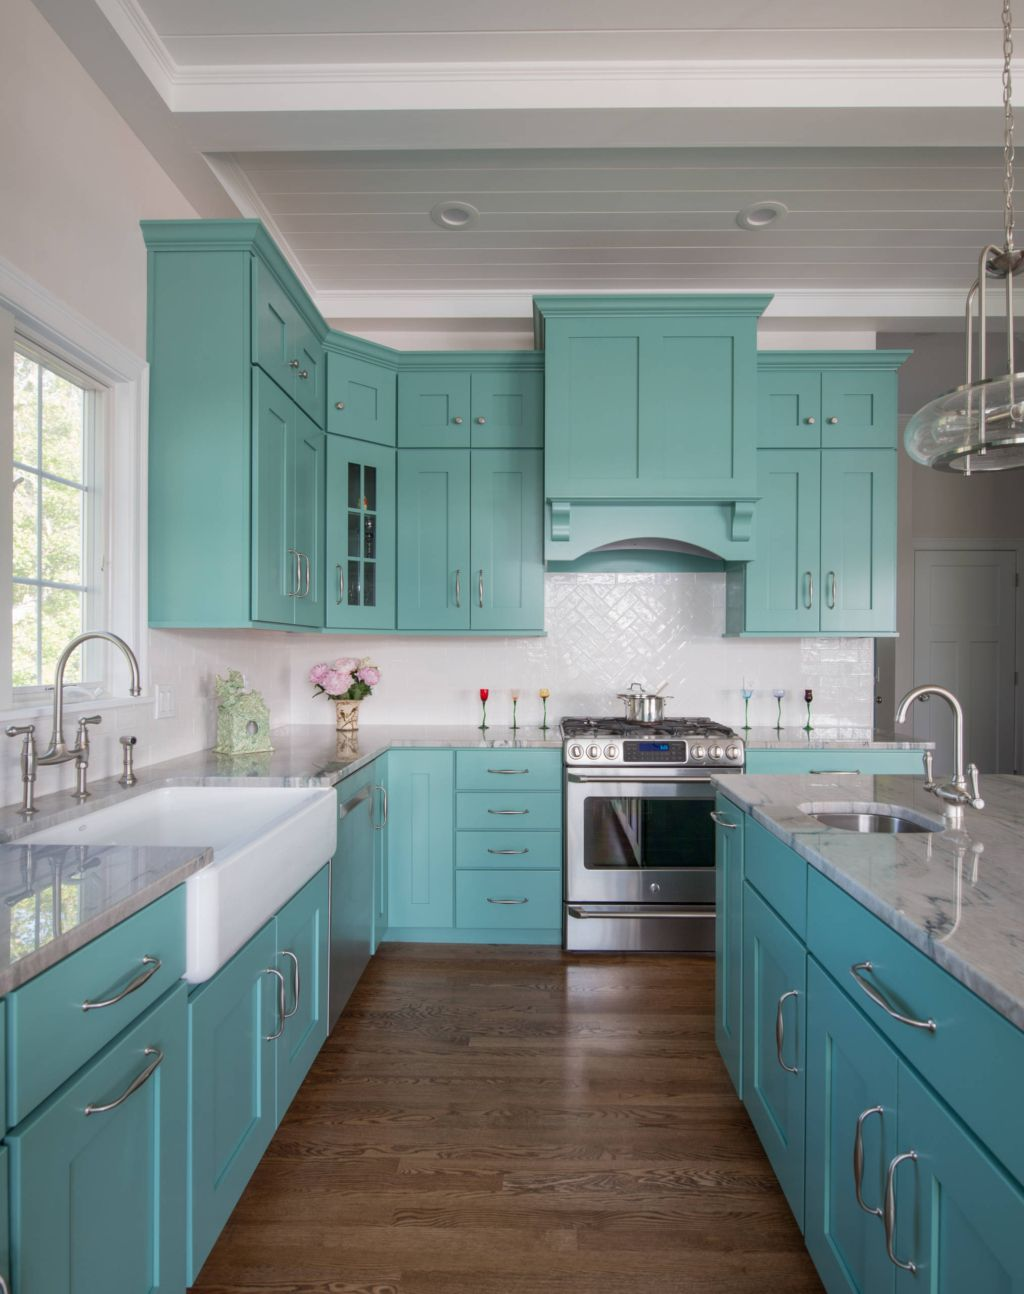 Mikayla Valois – Riverhead Building Supply | Kitchens | Pinterest ...